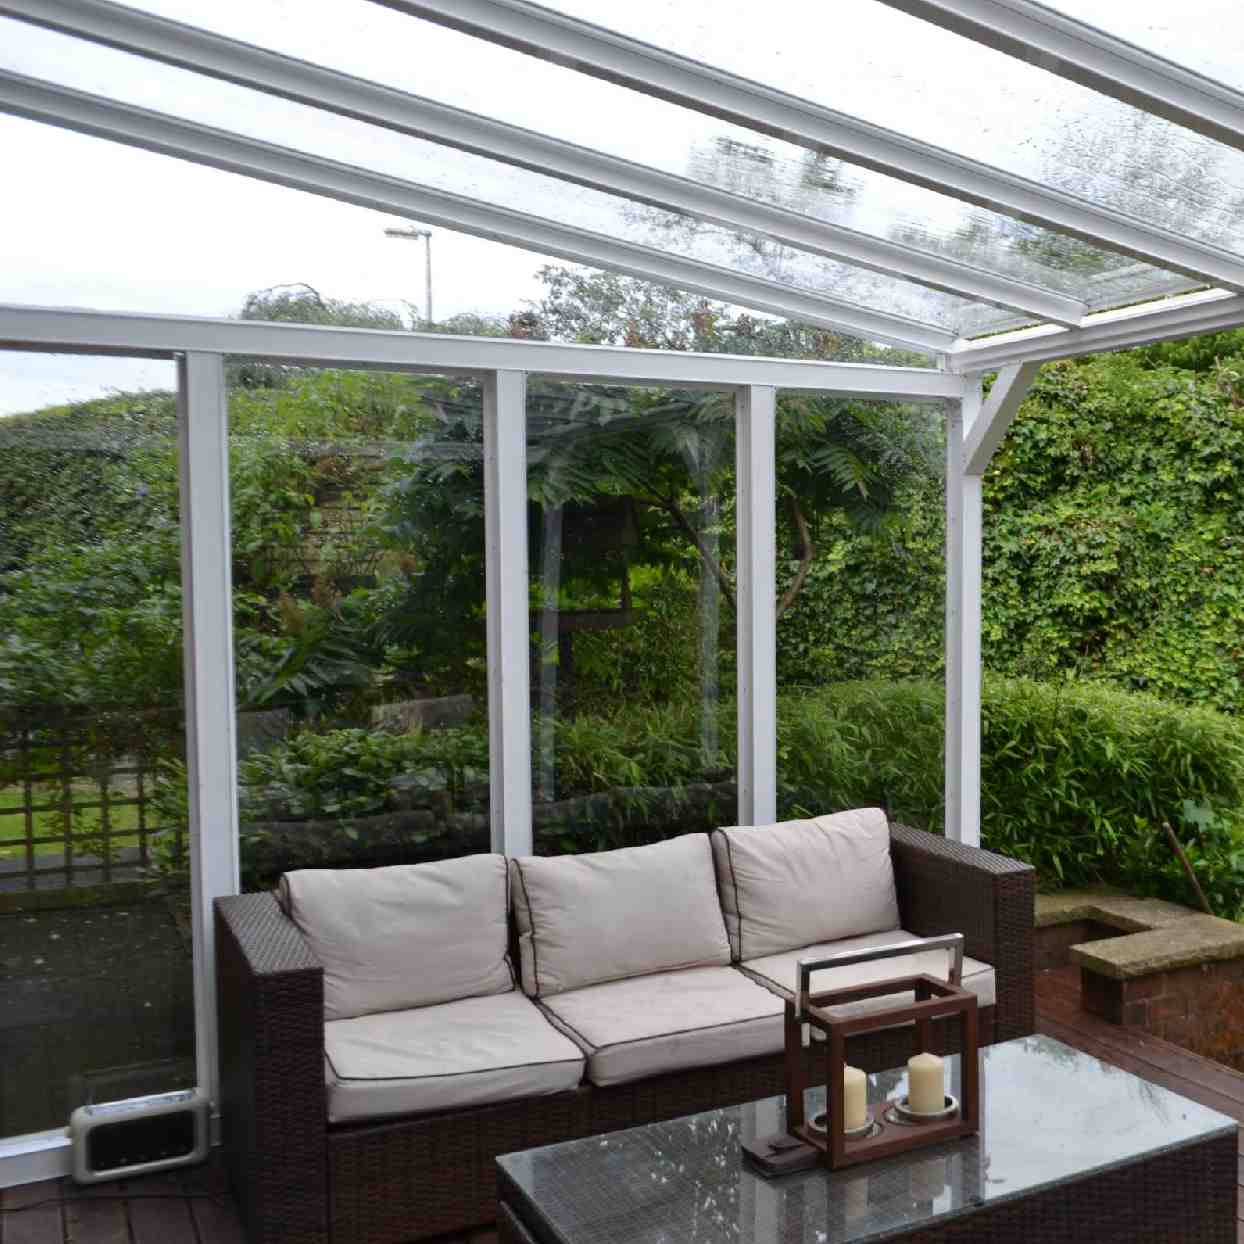 Buy Omega Verandah with 6mm Glass Clear Plate Polycarbonate Glazing - 2.1m (W) x 2.0m (P), (2) Supporting Posts online today